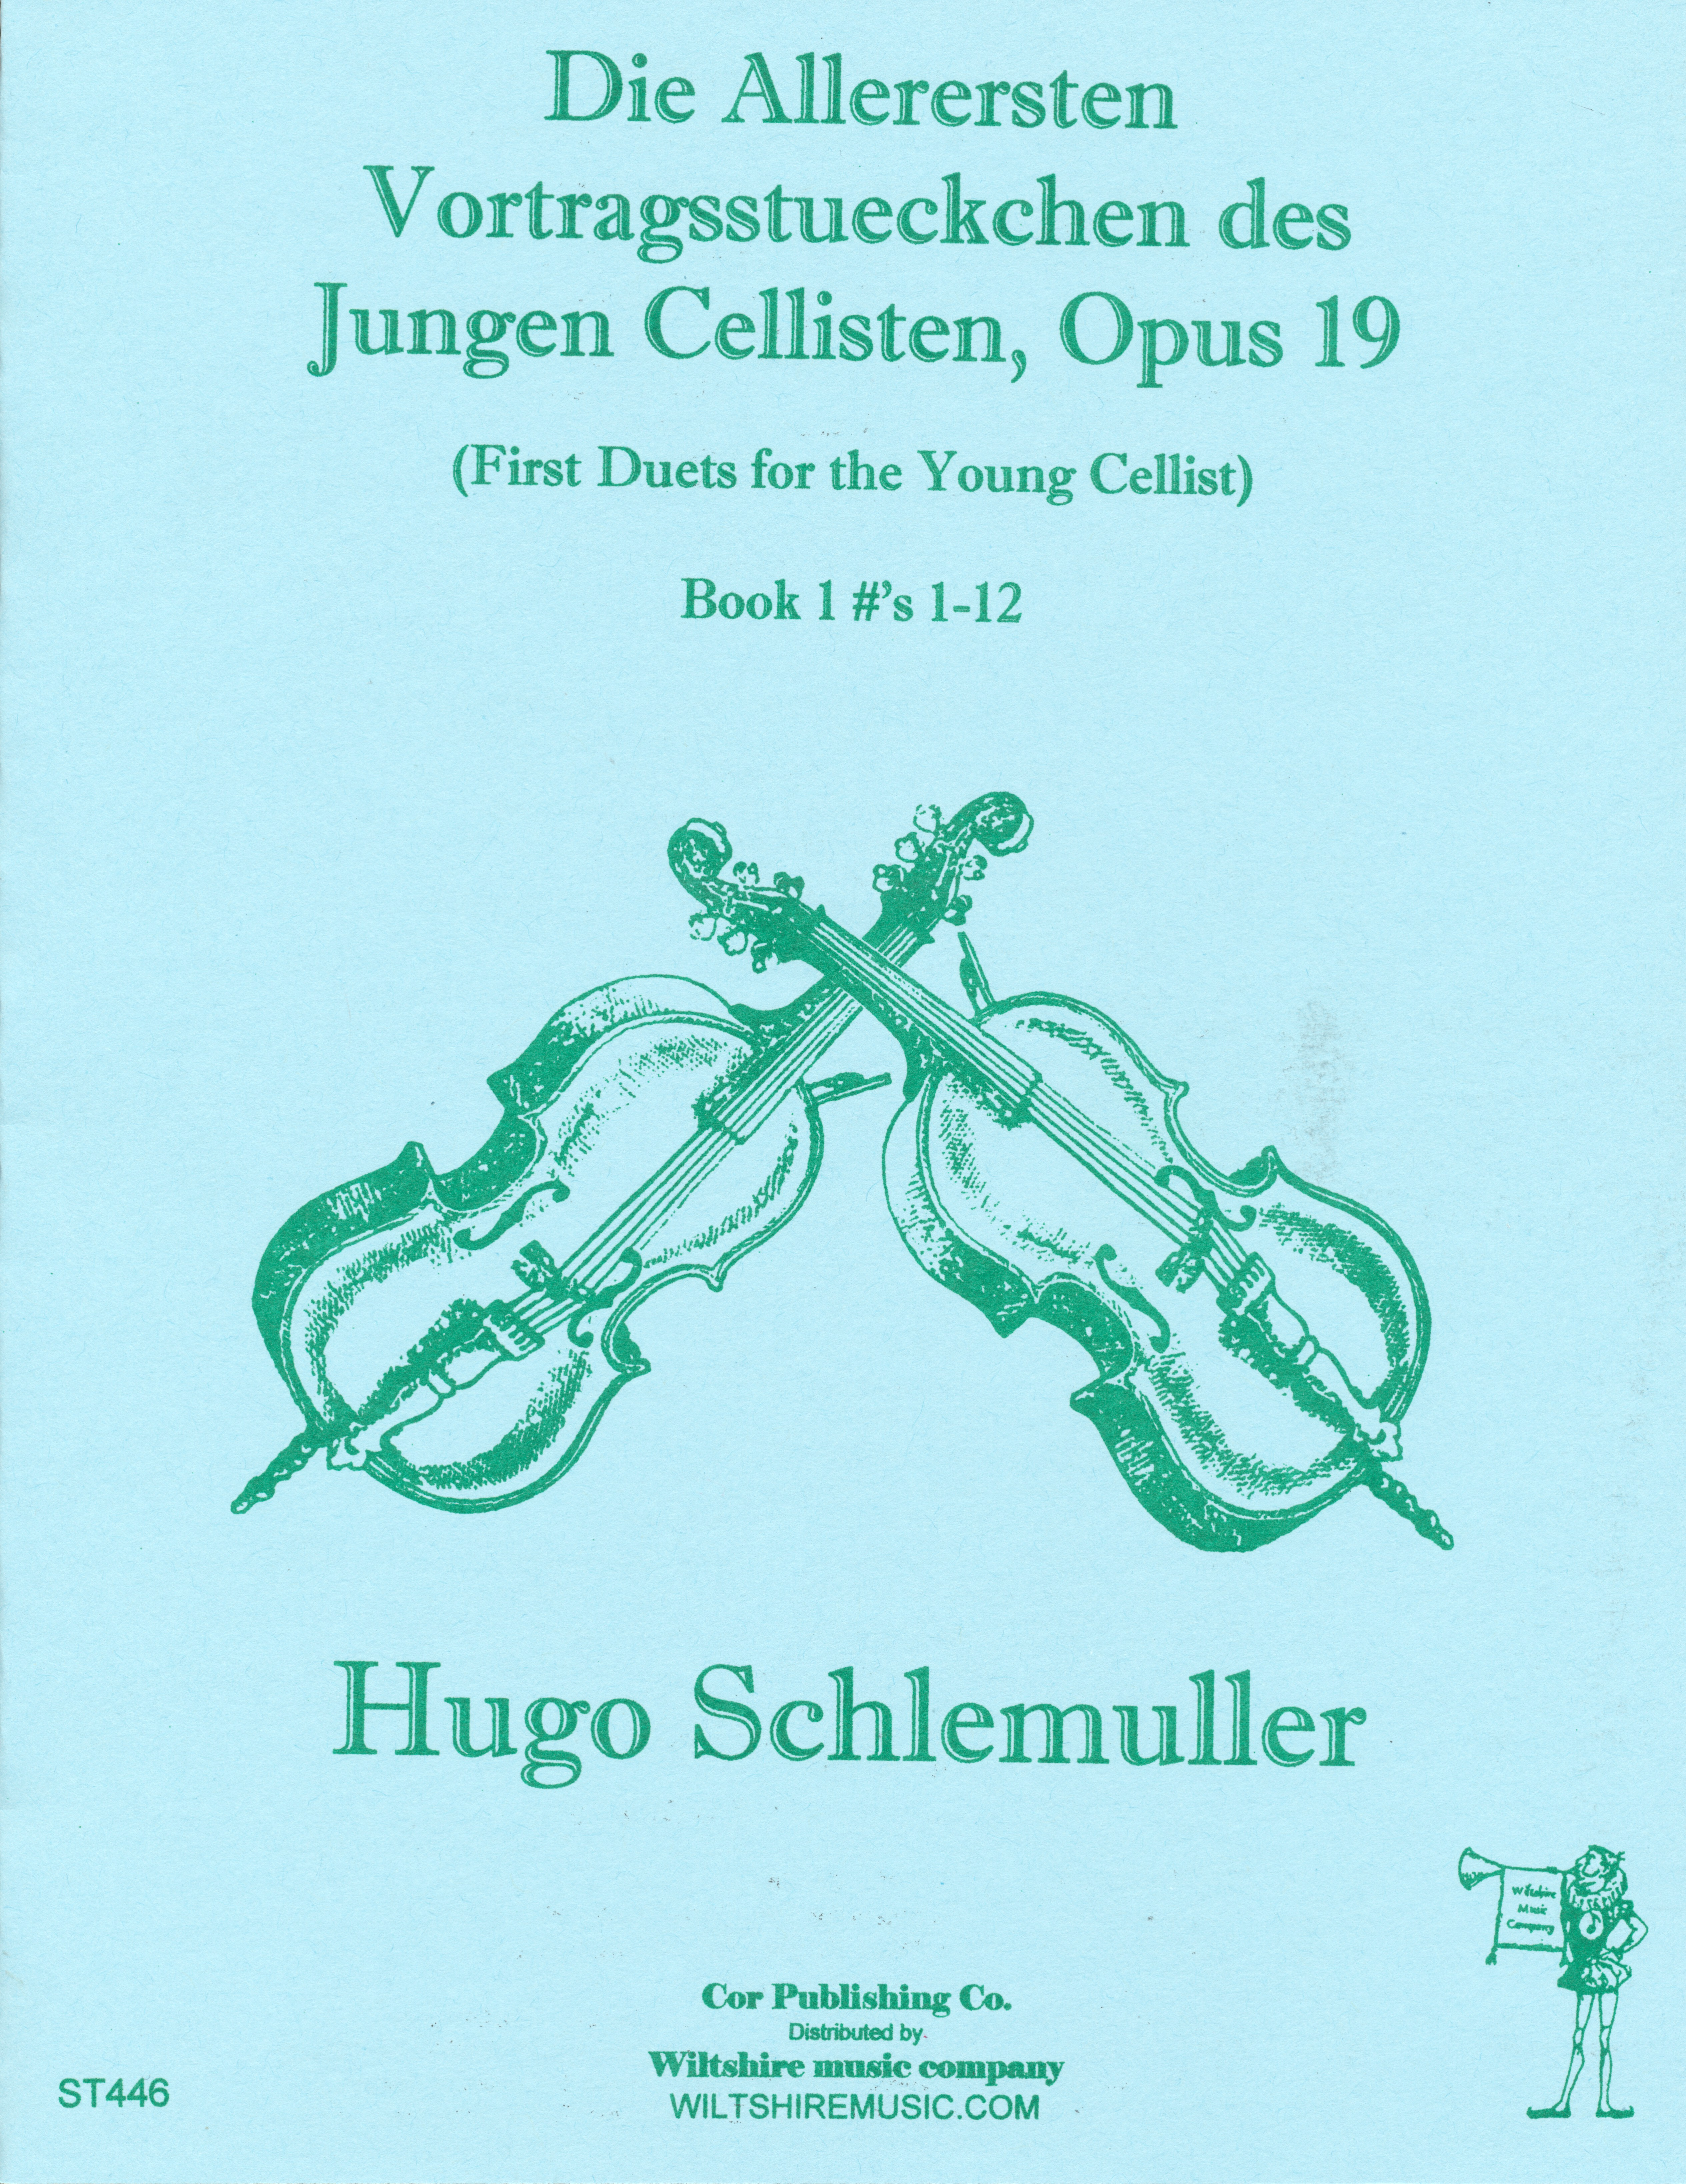 First Duets for the Young Cellist, Book 1, Hugo Schlemuller